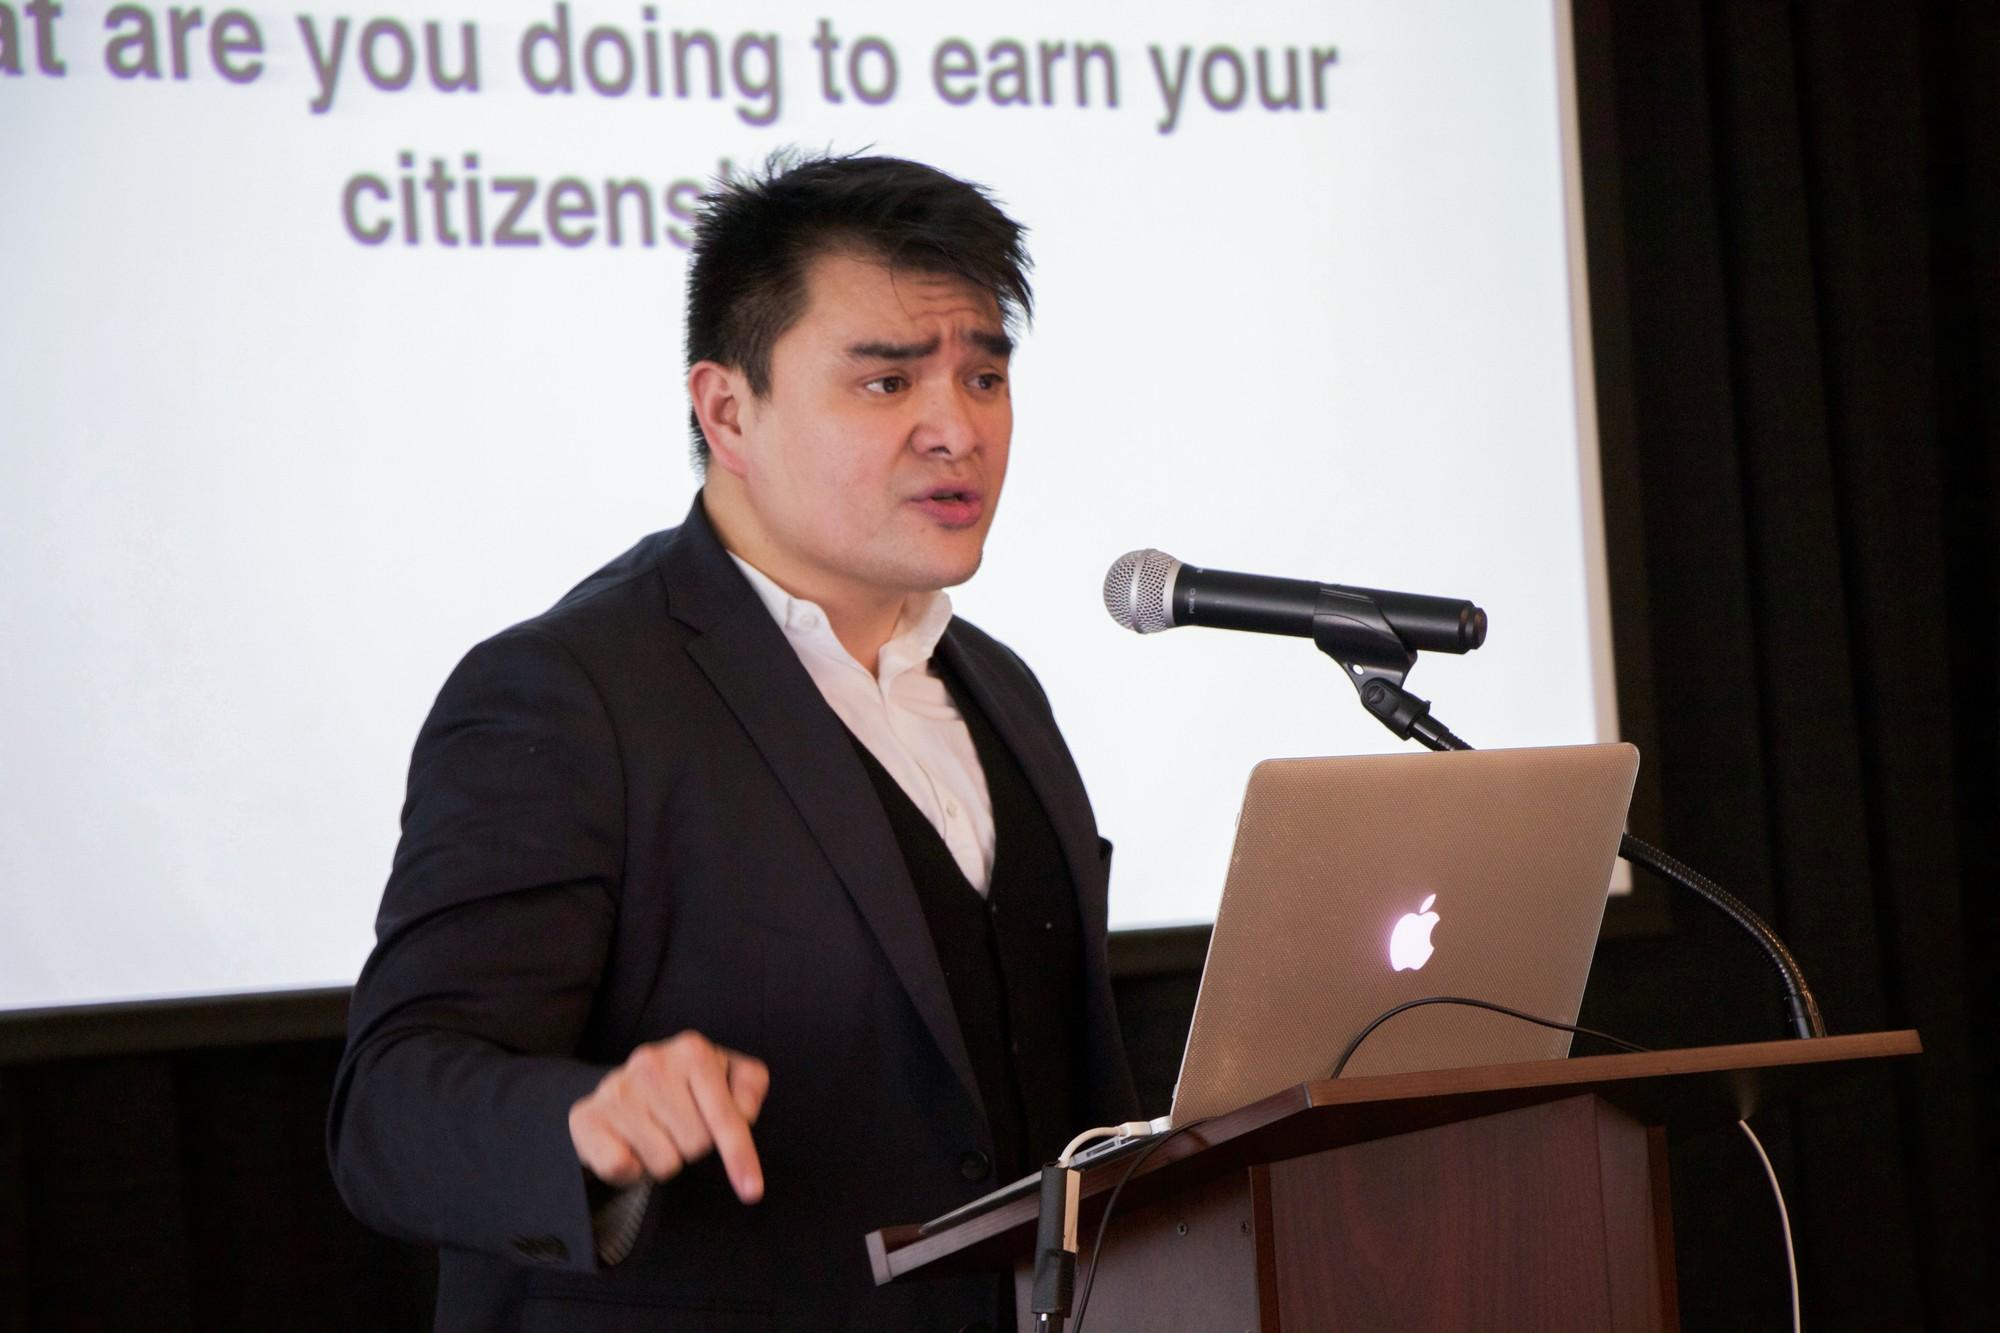 Journalist Jose Antonio Vargas speaks to Skyline students and staff about undocumented immigrants in America in building 6 on April 7, 2016.